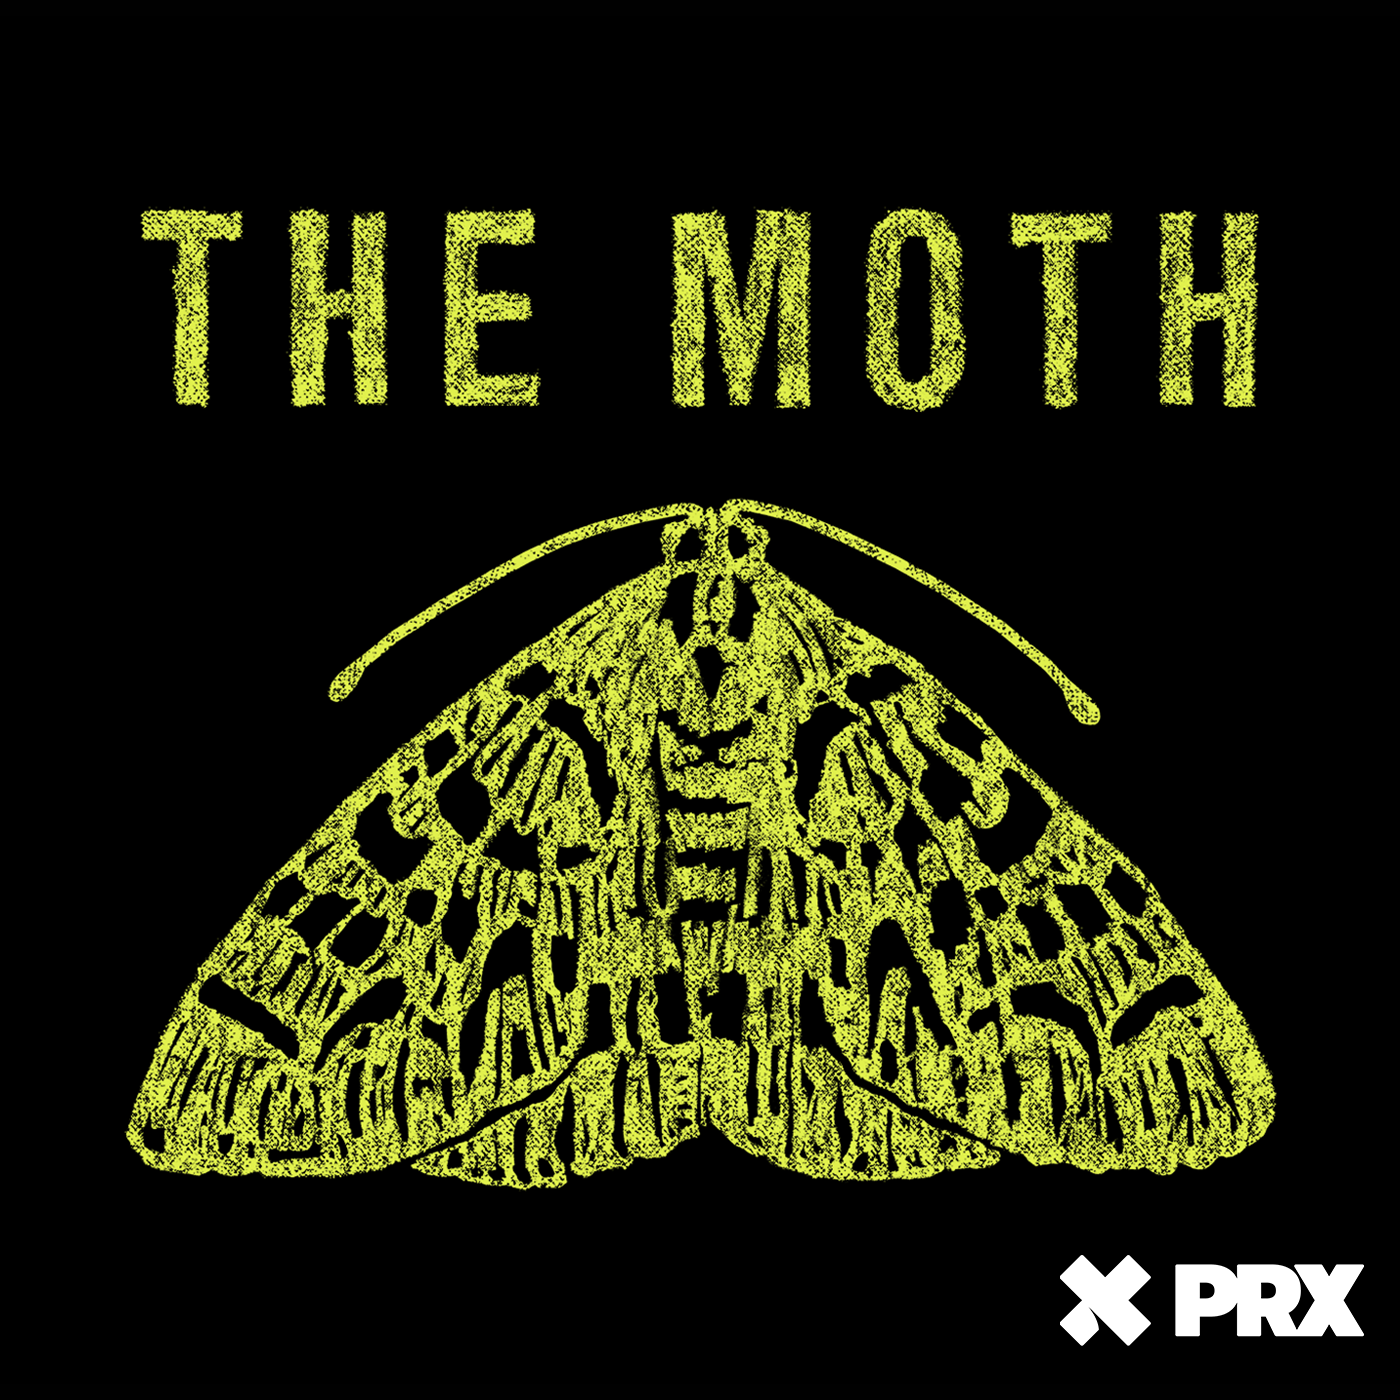 The Moth Radio Hour: Kidneys, Undergarments, and Cabbies